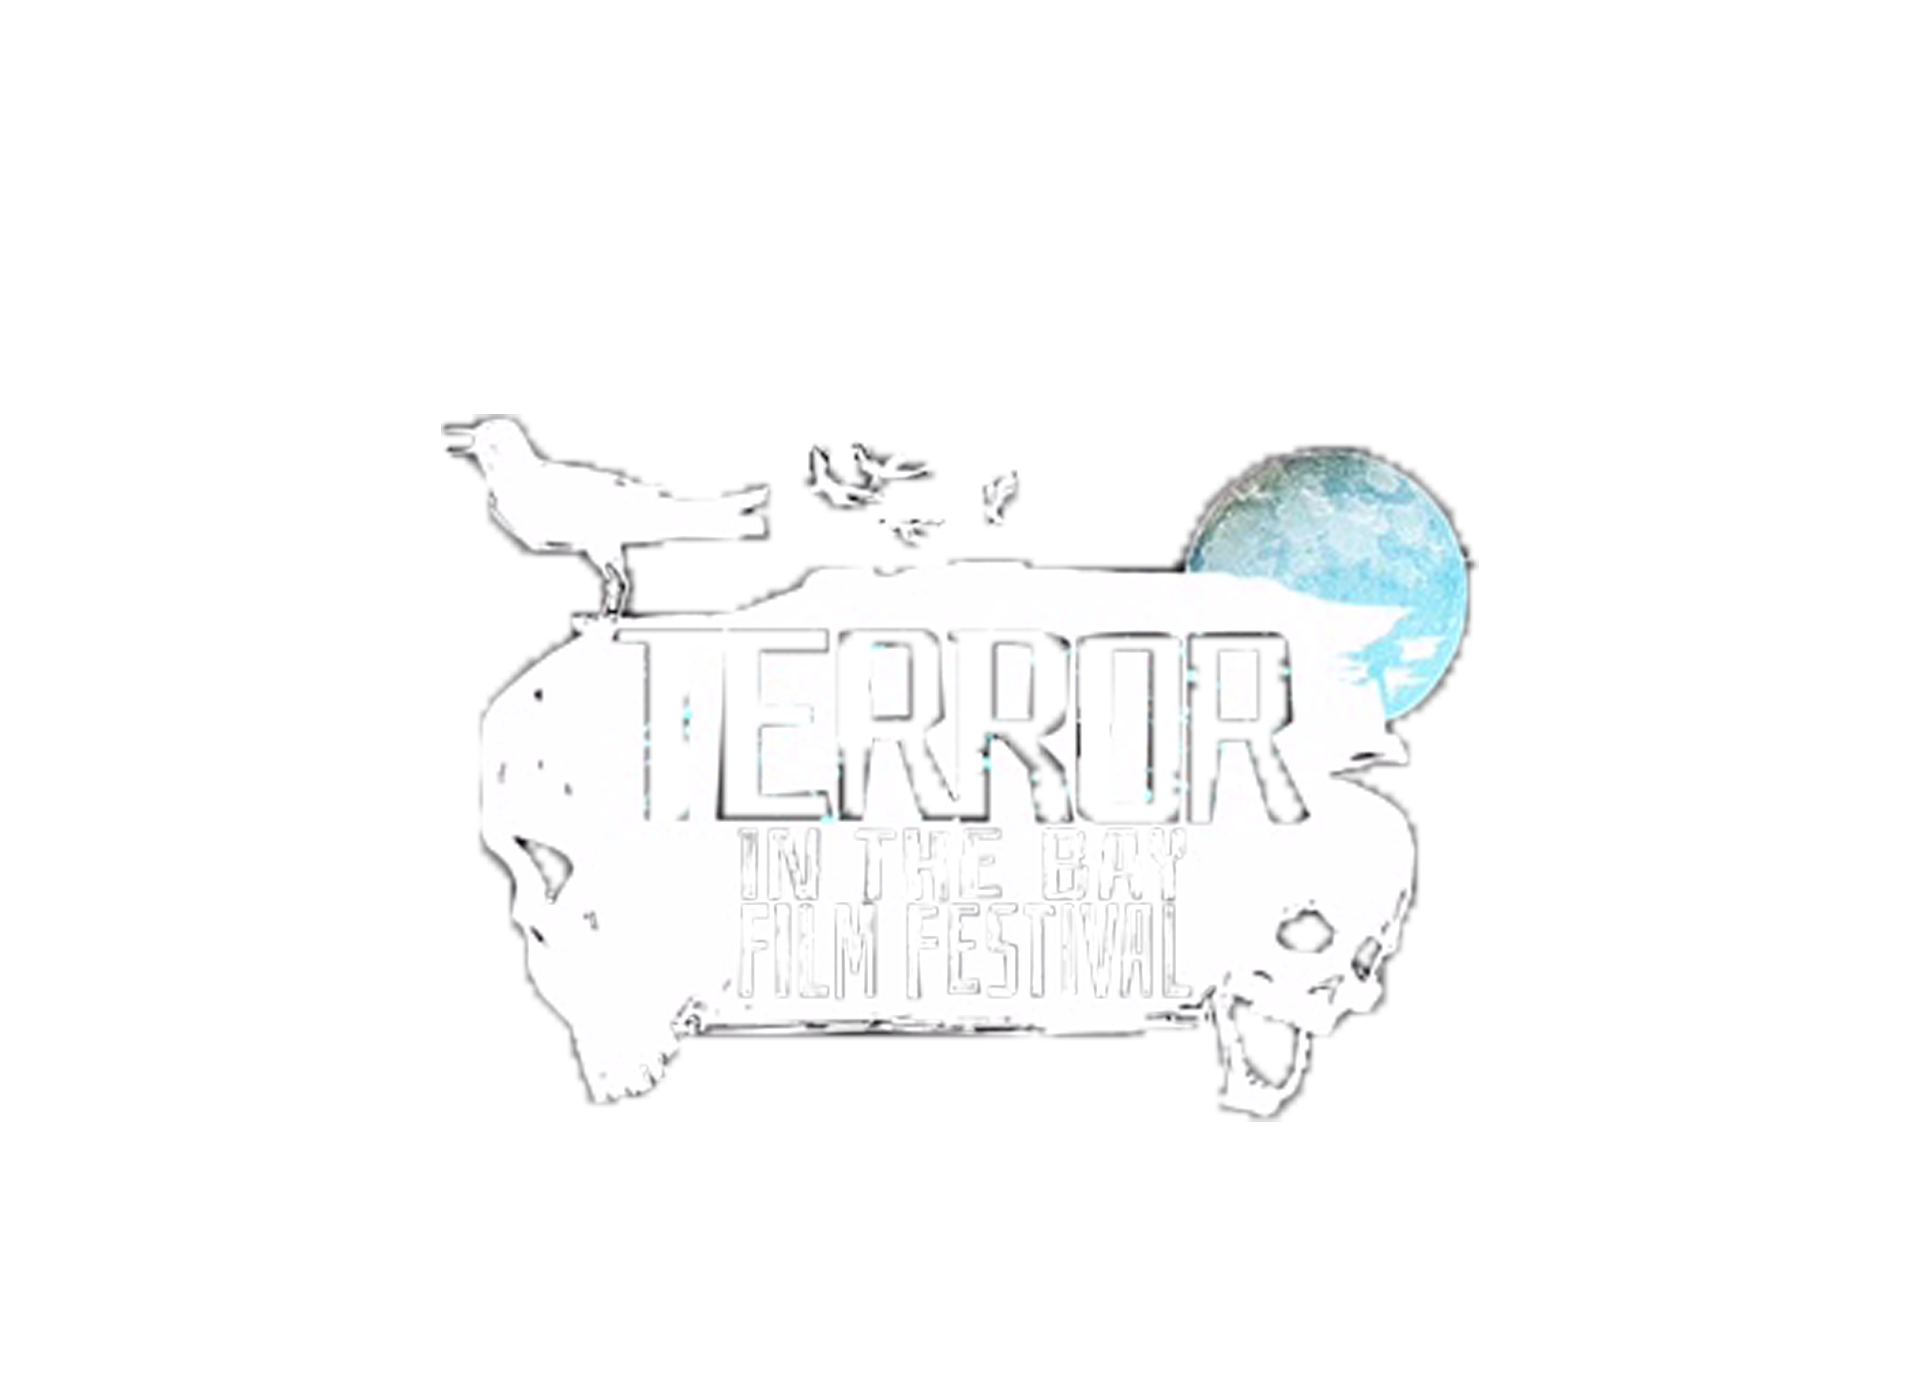 terror in the bay best actress nomination 2108 mock white.png